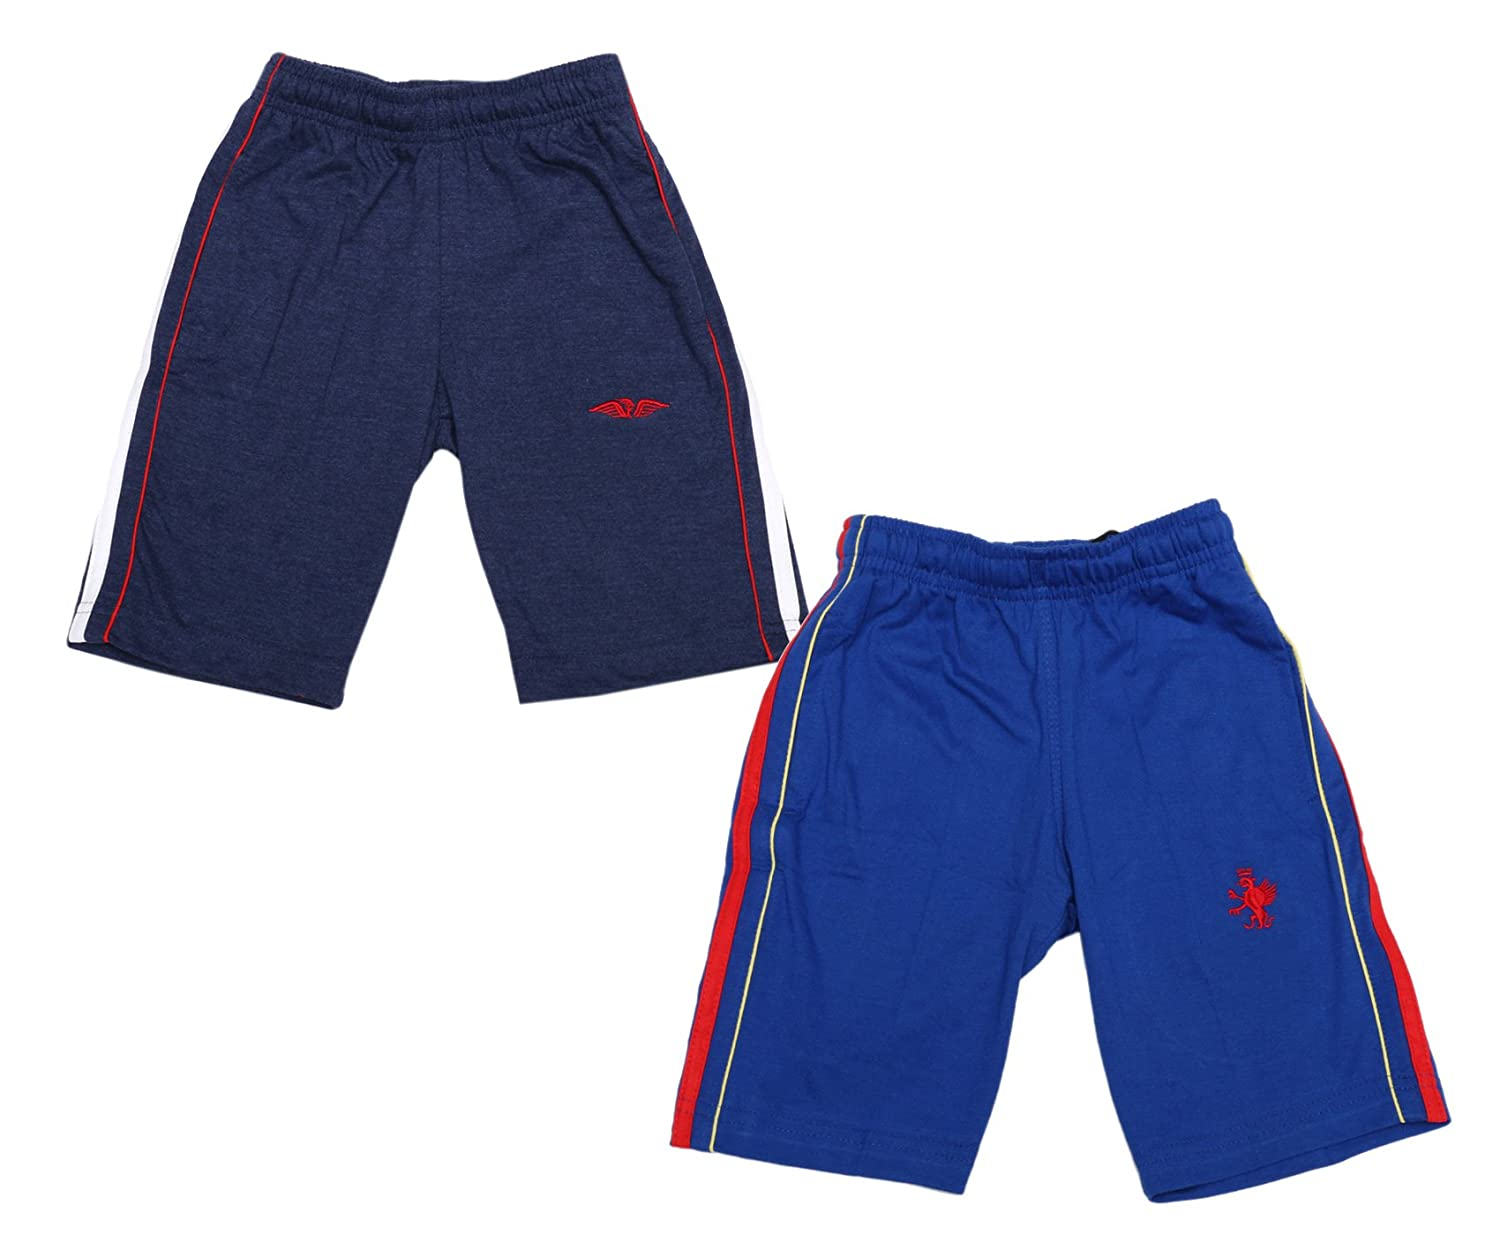 Indistar Boy Summer Wear Cotton Regular Fit Bermuda//Shorts Blue//Navy Blue Pack Of 2 Pairs